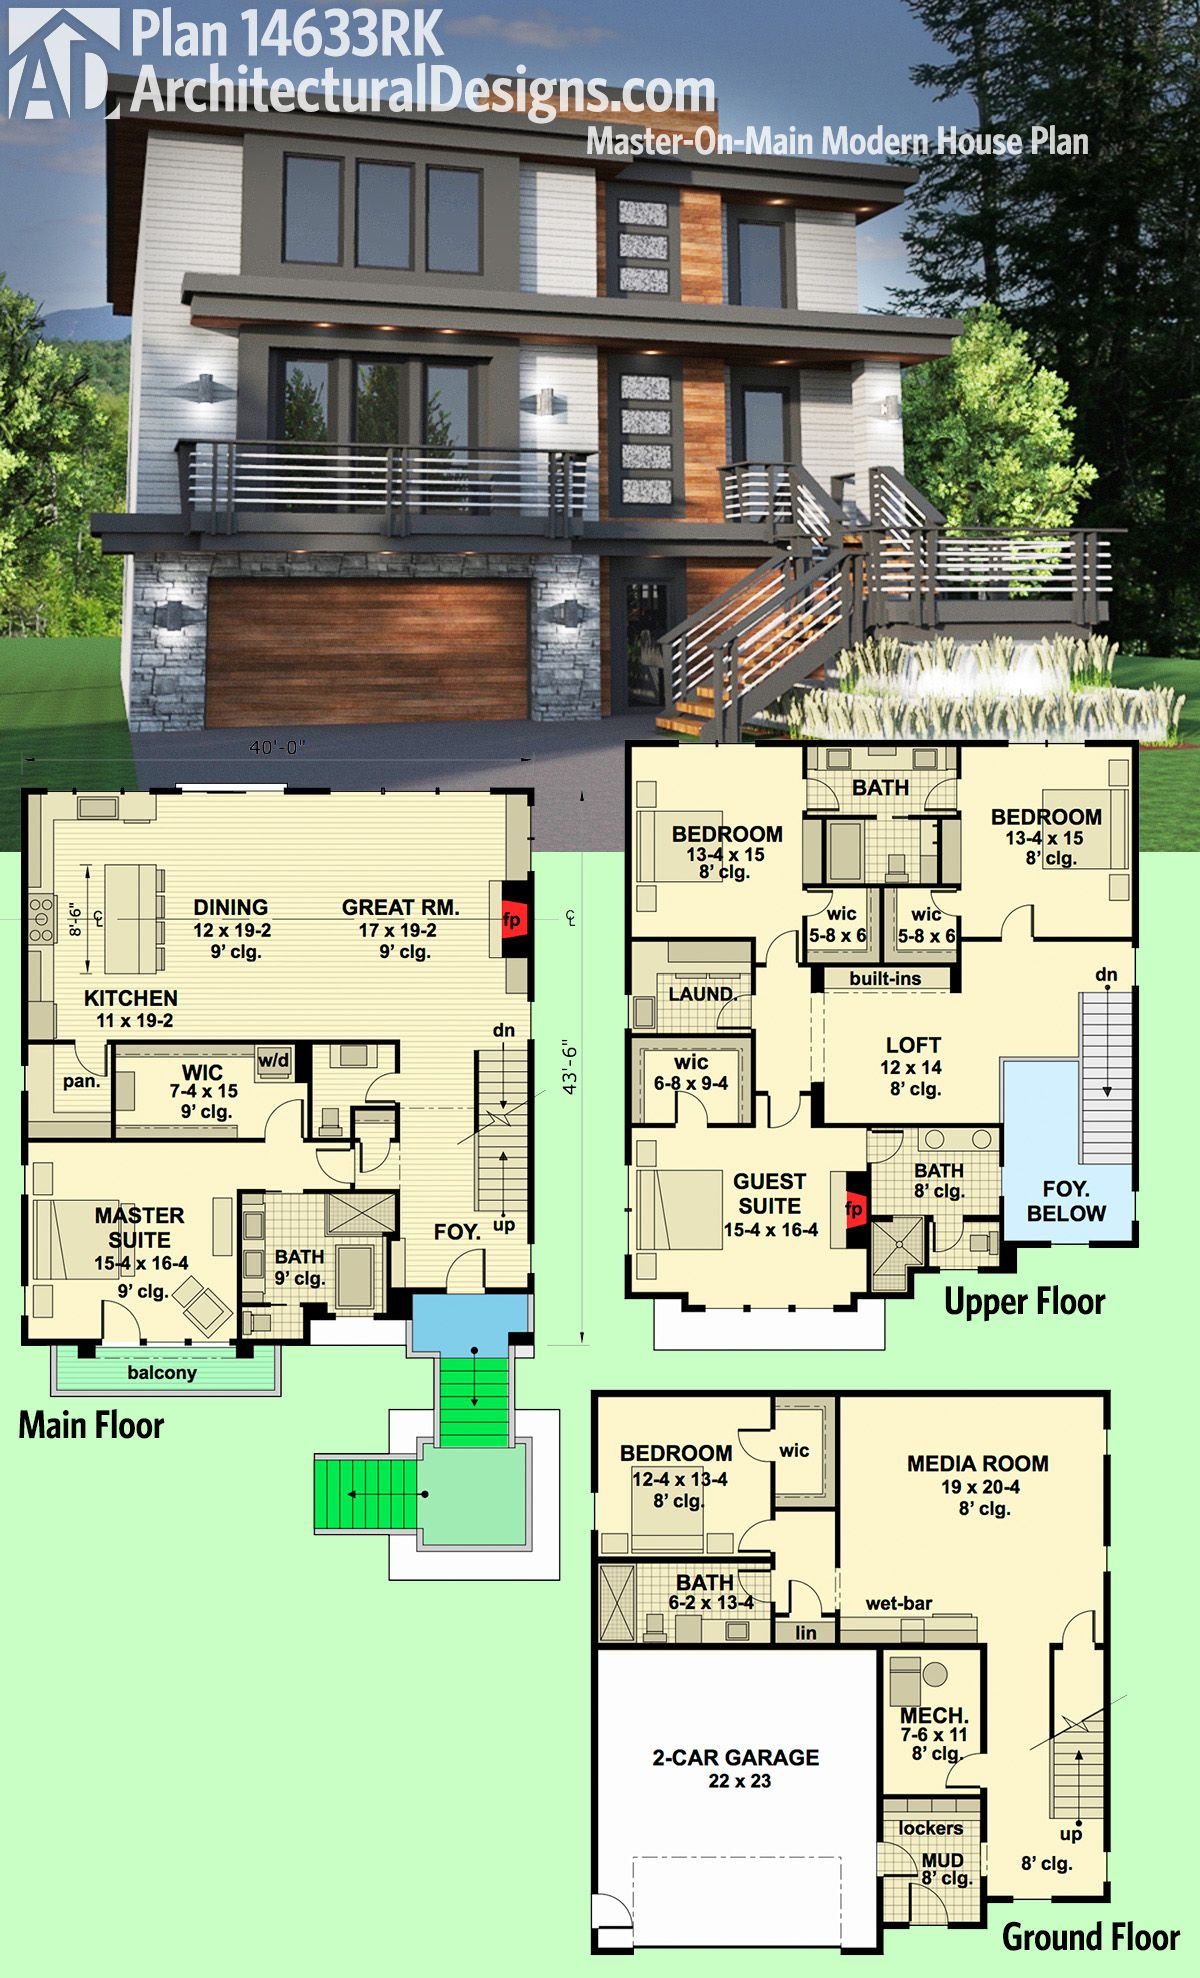 Plan 14633rk master on main modern house plan modern for Modern square house plans